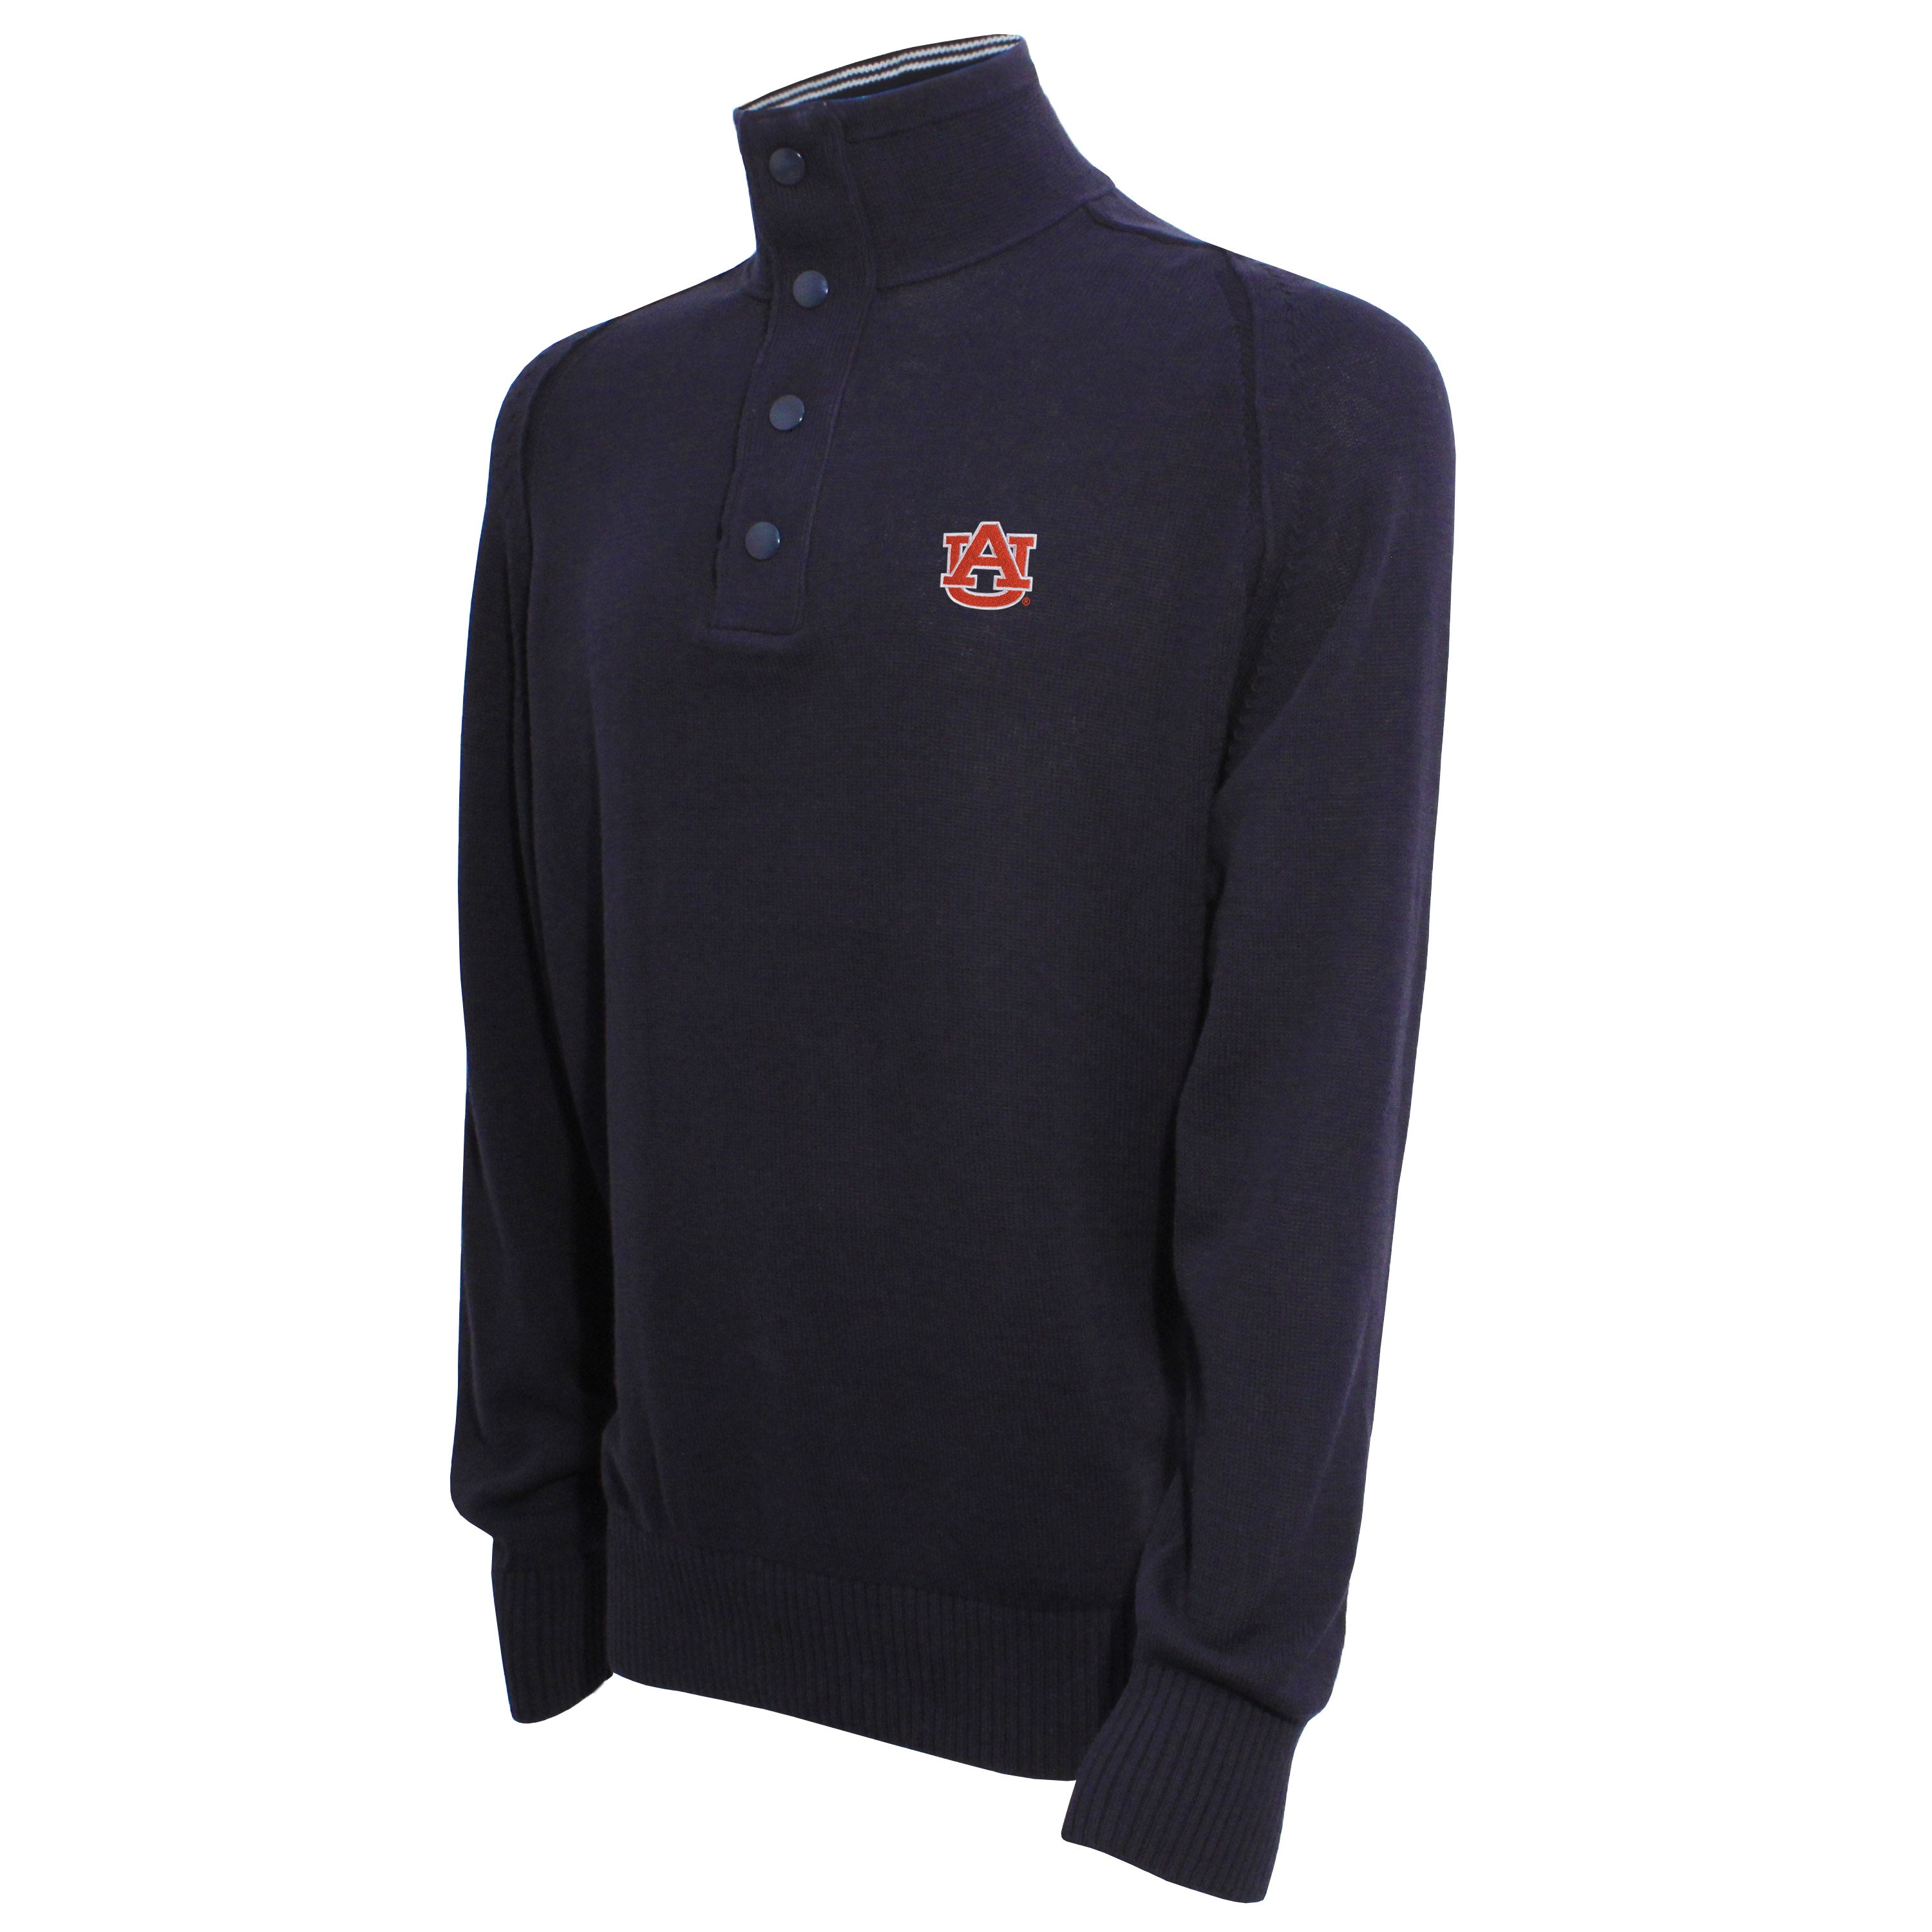 Vesi Auburn Men's Navy Quarter Zip Sweater